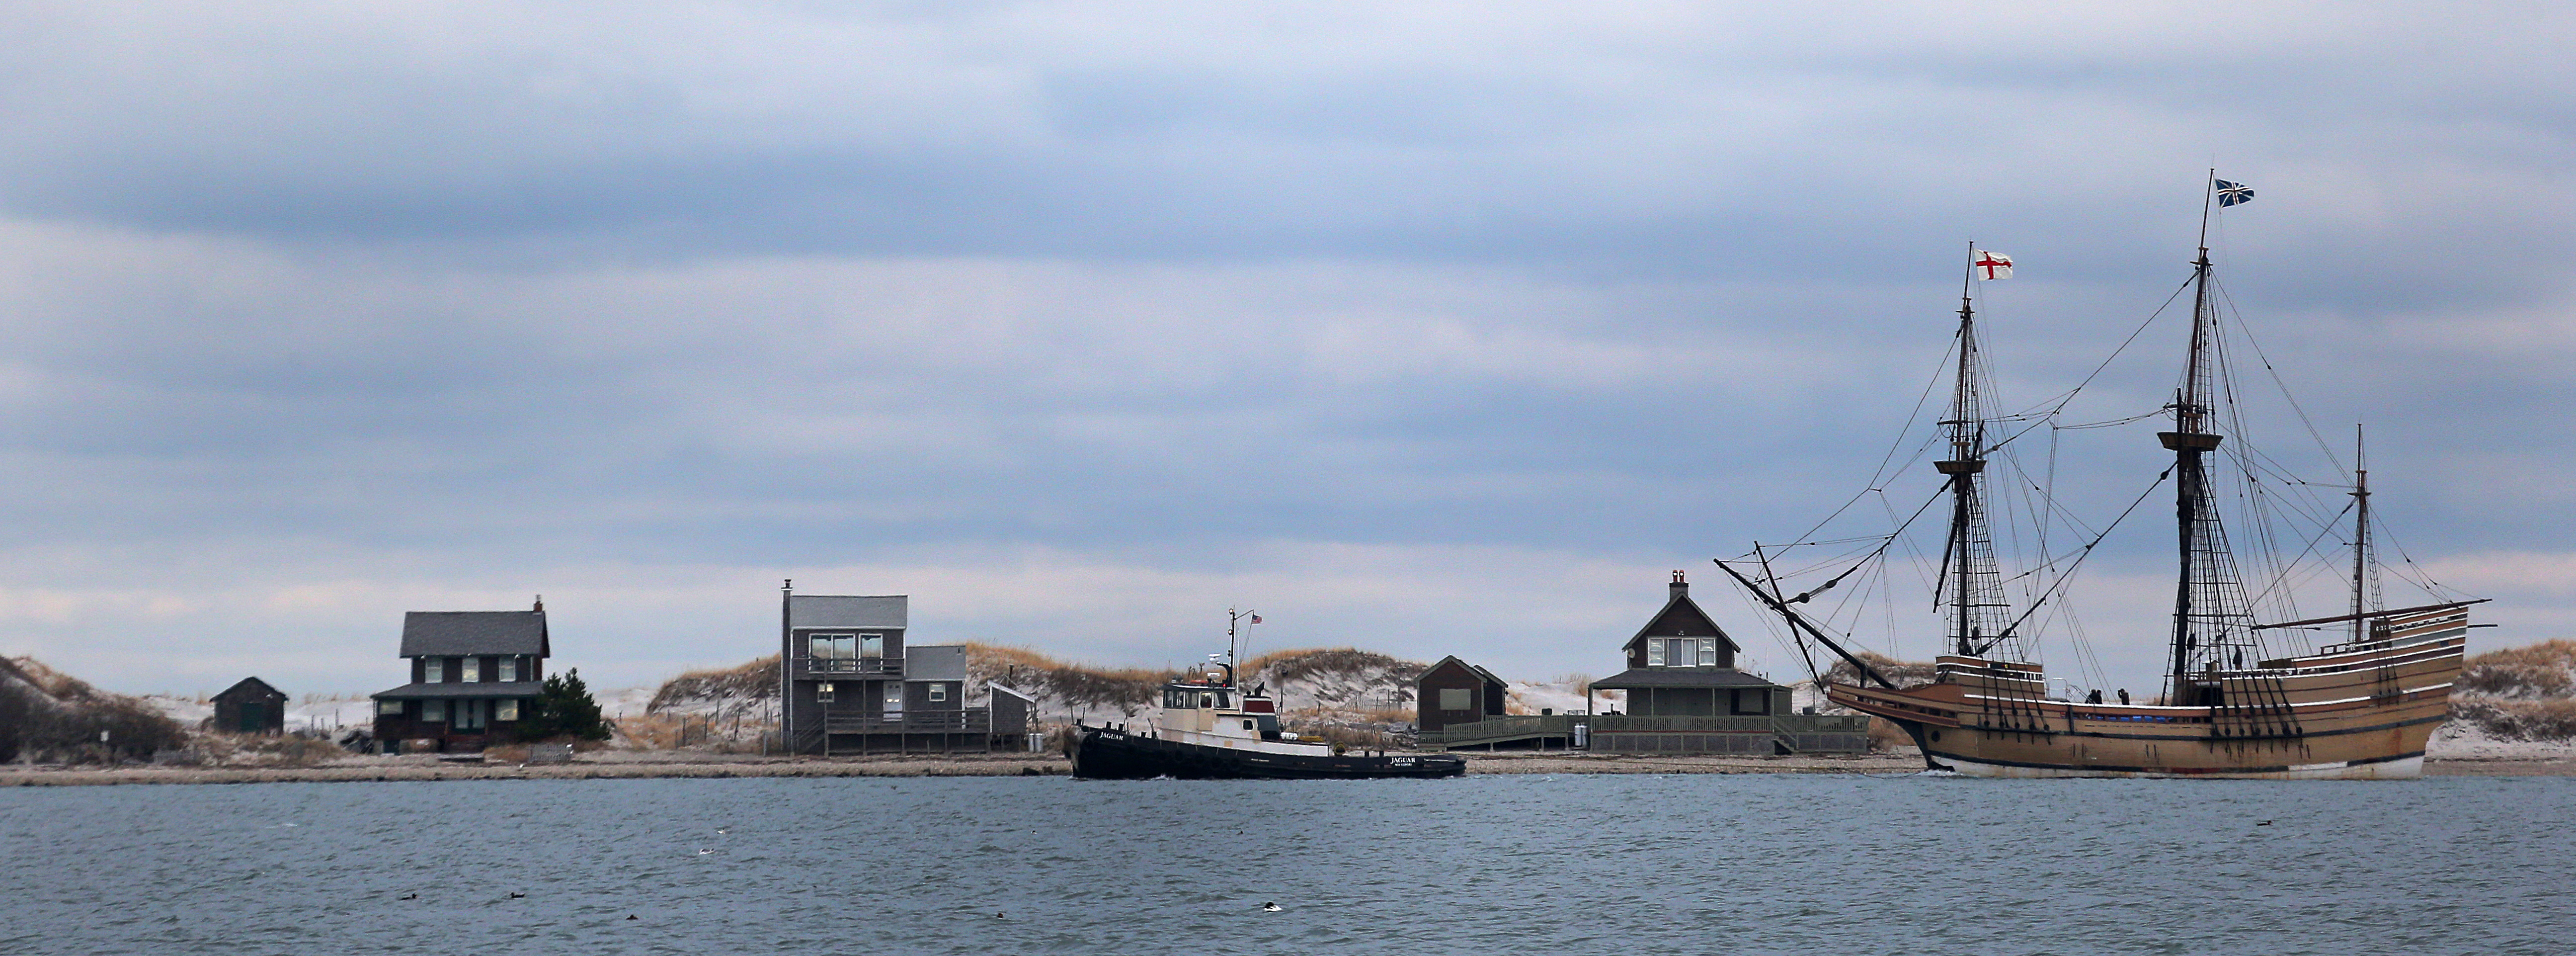 Plymouth seeks funds for 400th Mayflower anniversary - The